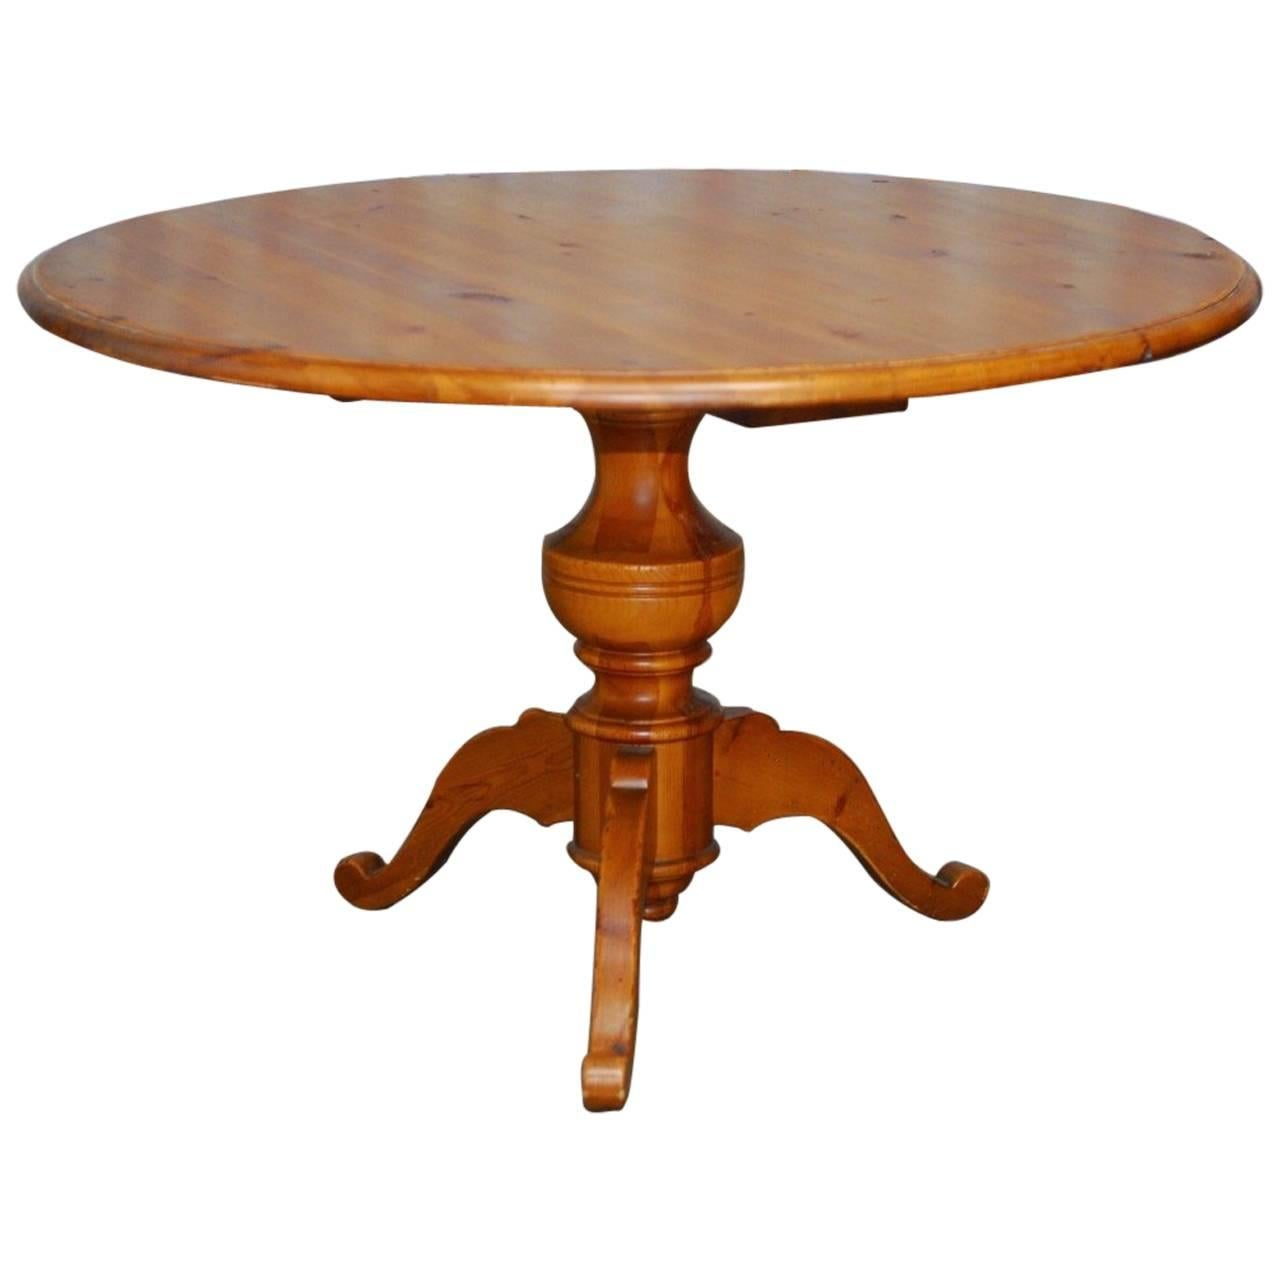 English Country Round Pine Pedestal Dining Table